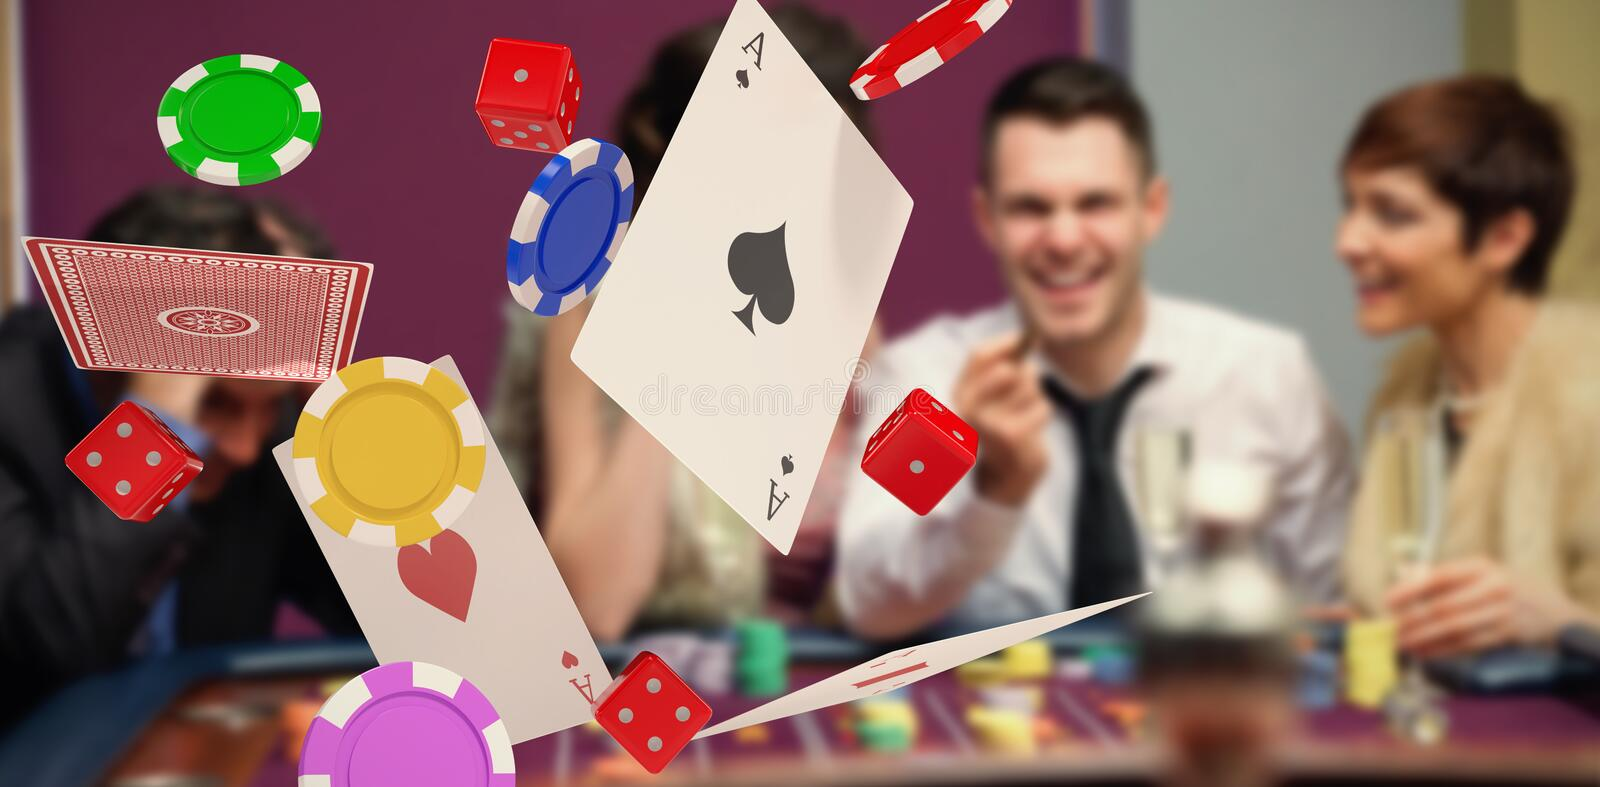 Composite image of 3d image of playing cards with casino tokens and dice. 3D image of playing cards with casino tokens and dice against winner and loser at vector illustration